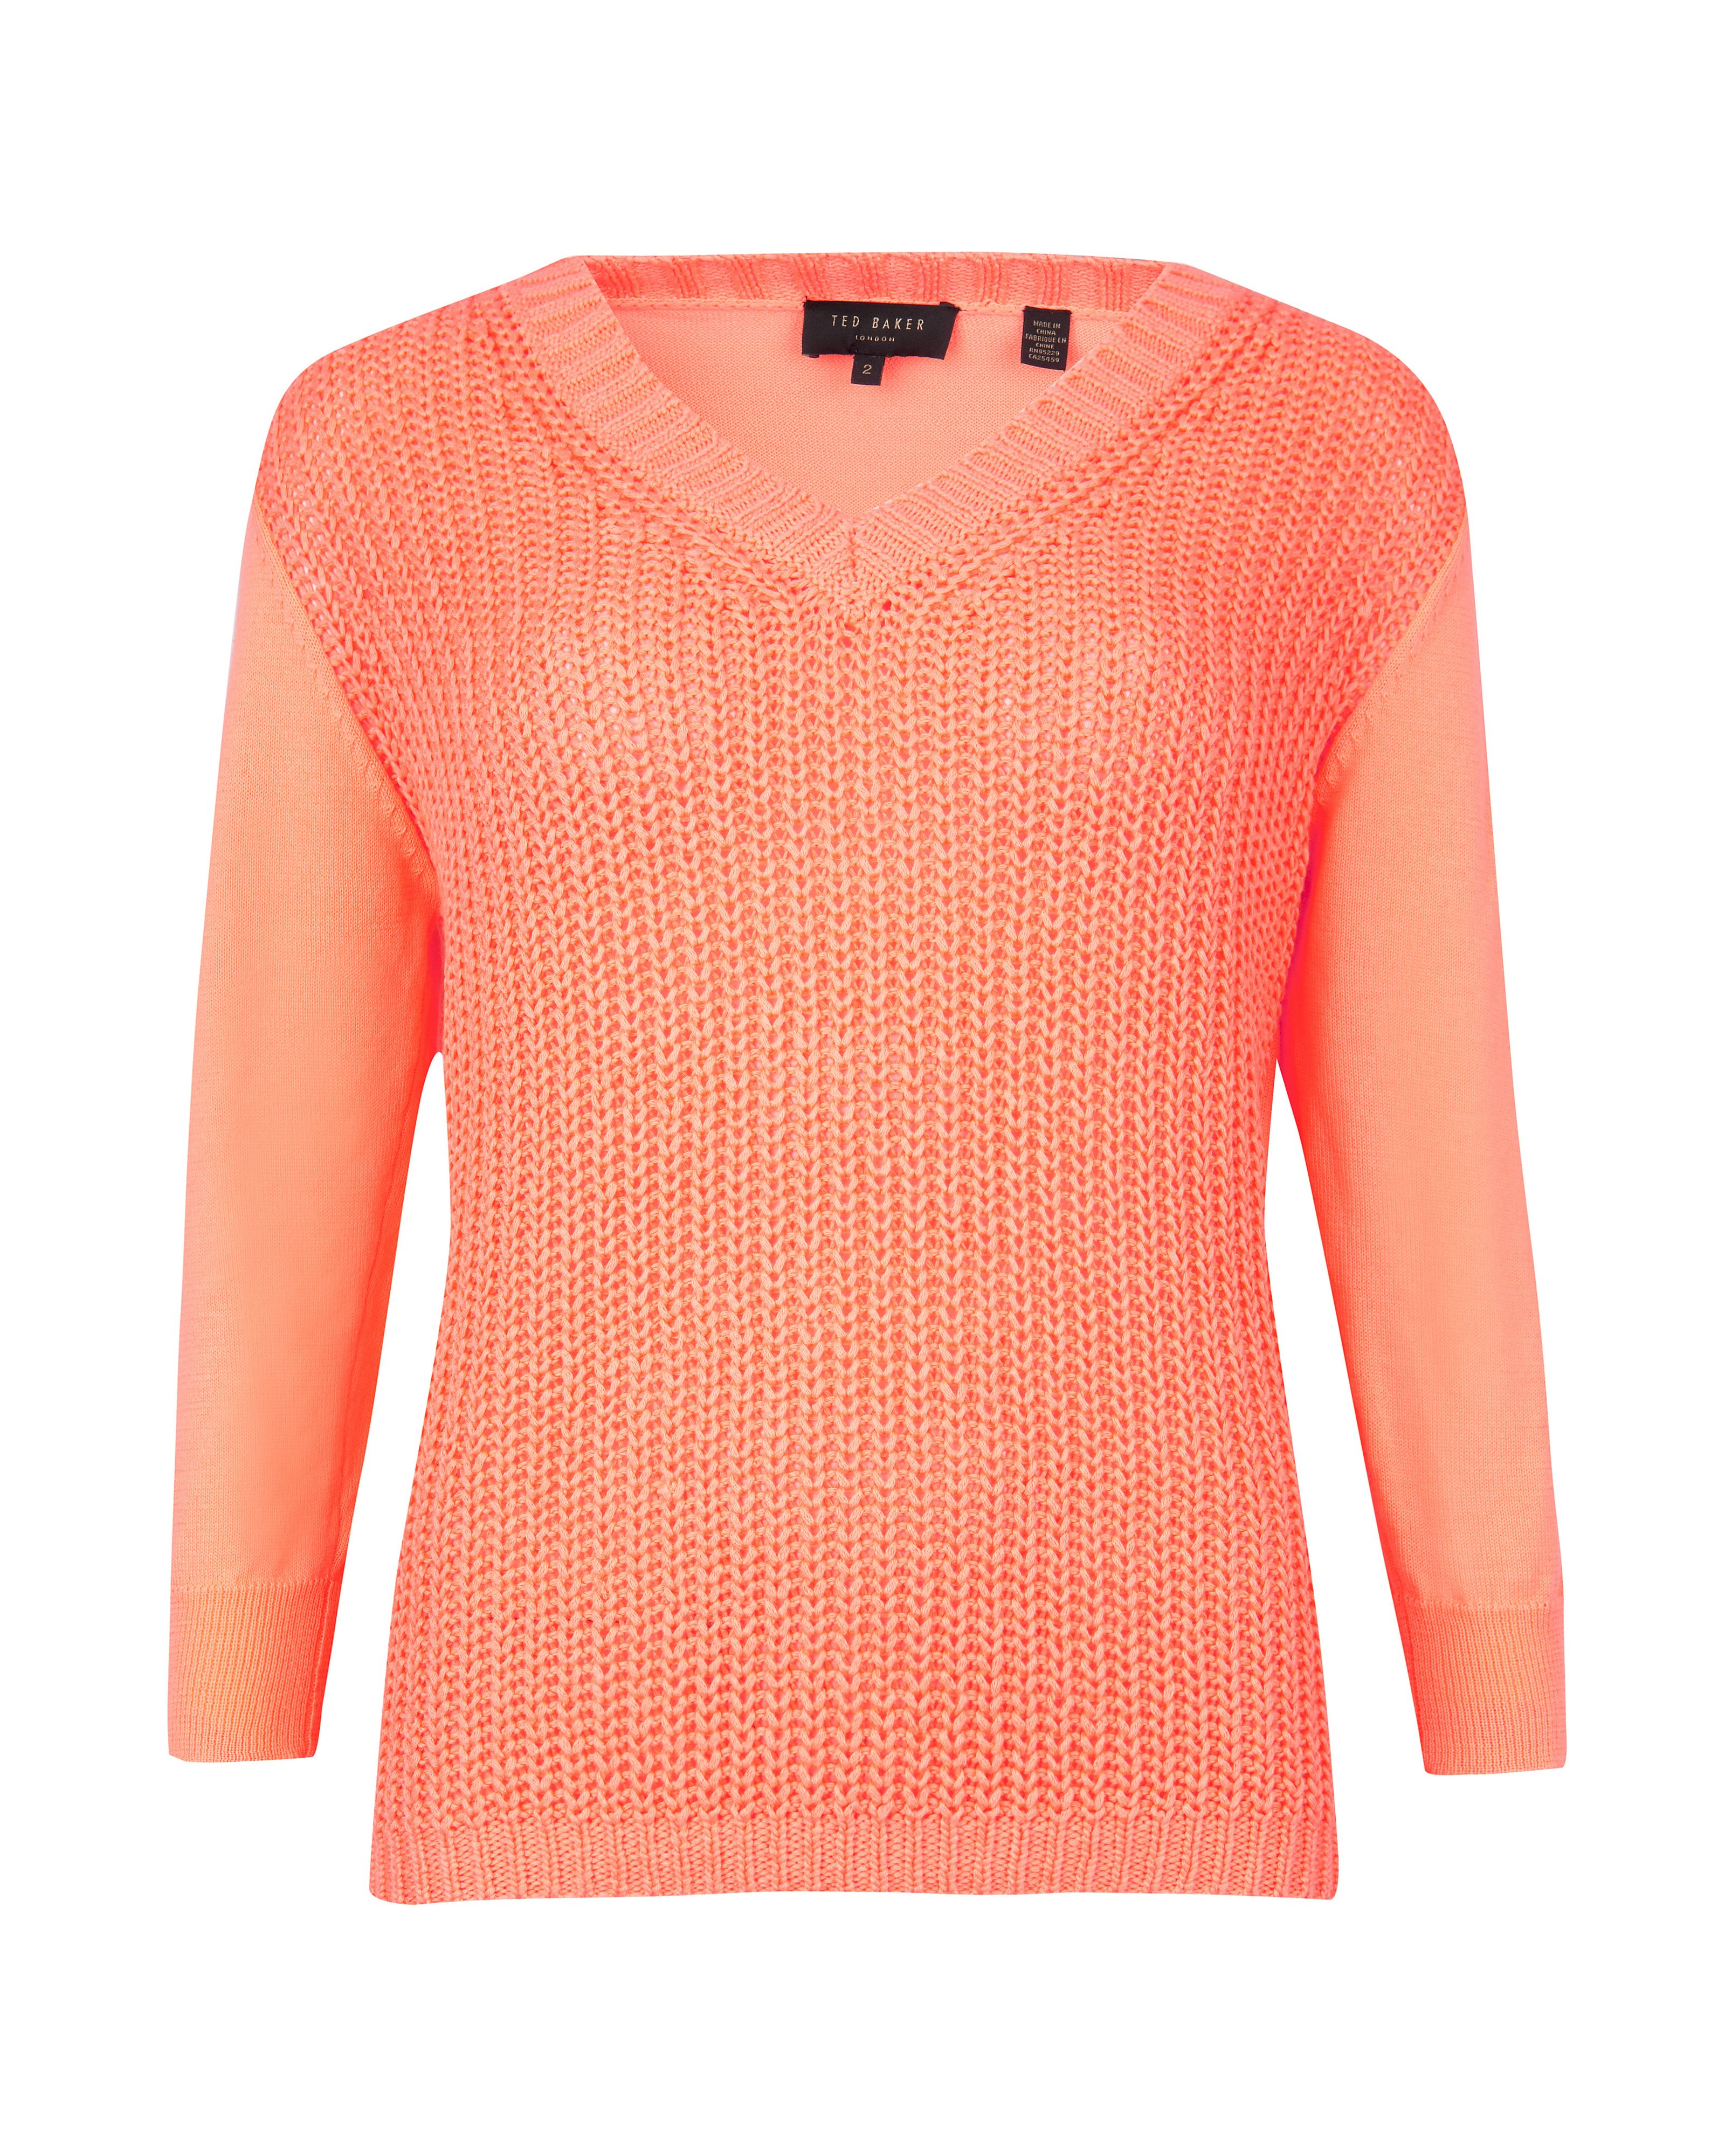 Lills neon knit jumper